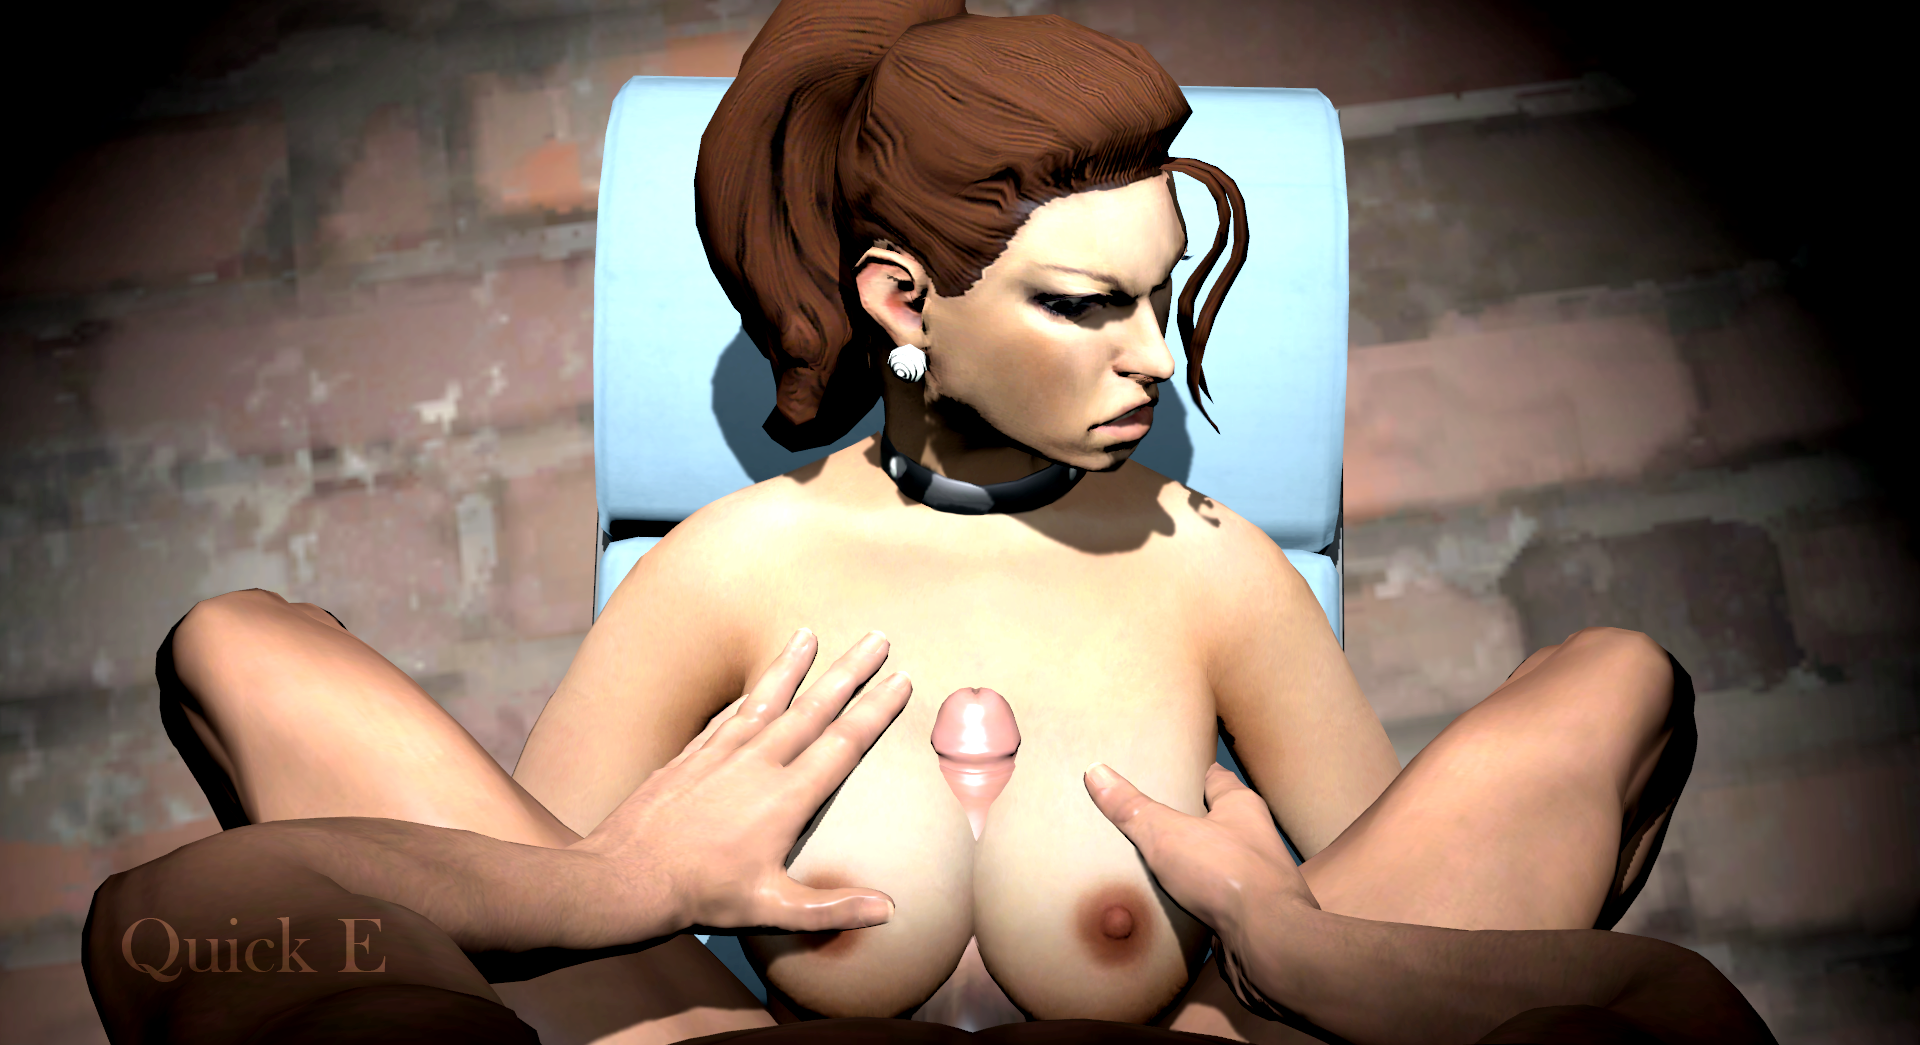 Saints row xxx pics nude photo